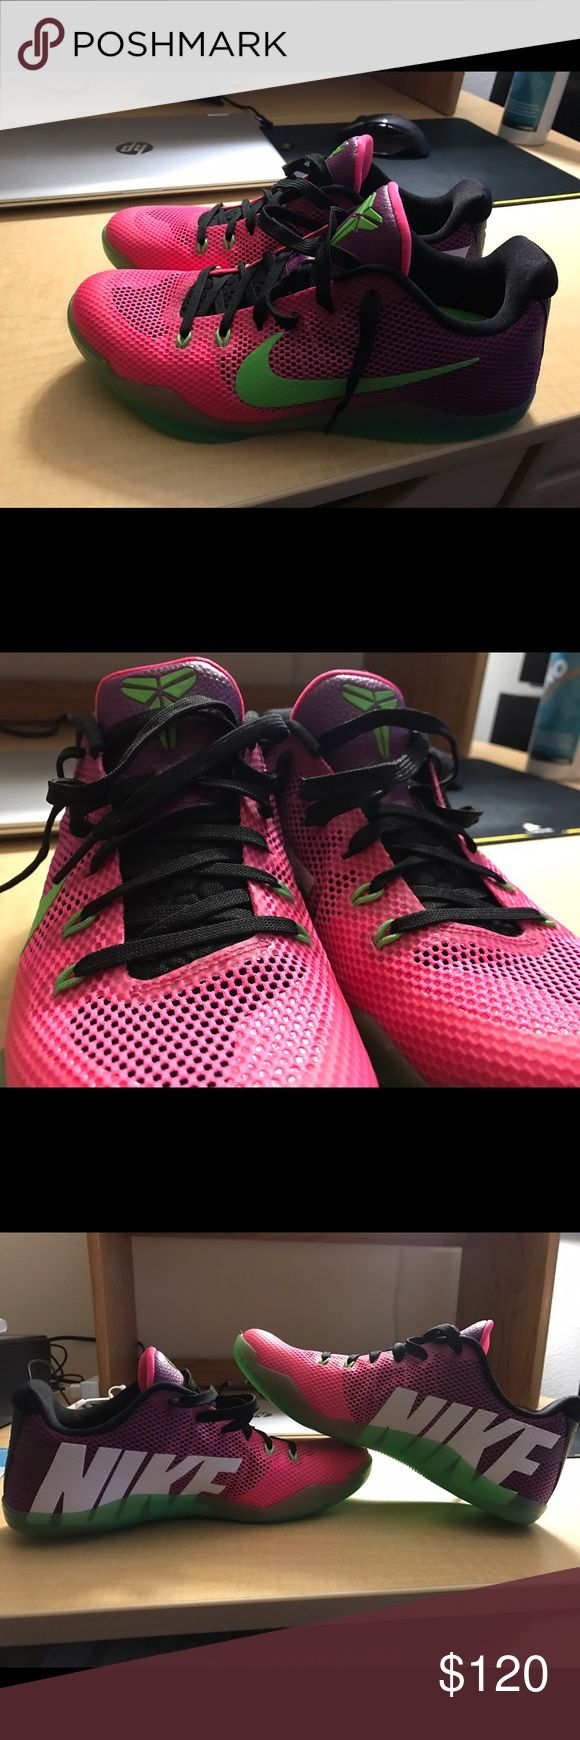 """Nike Kobe 11 EM """"Mambacurial"""" 9.9/10, Size 8.5, worn once. Practically brand new, comes with original box. Nike Shoes Athletic Shoes"""